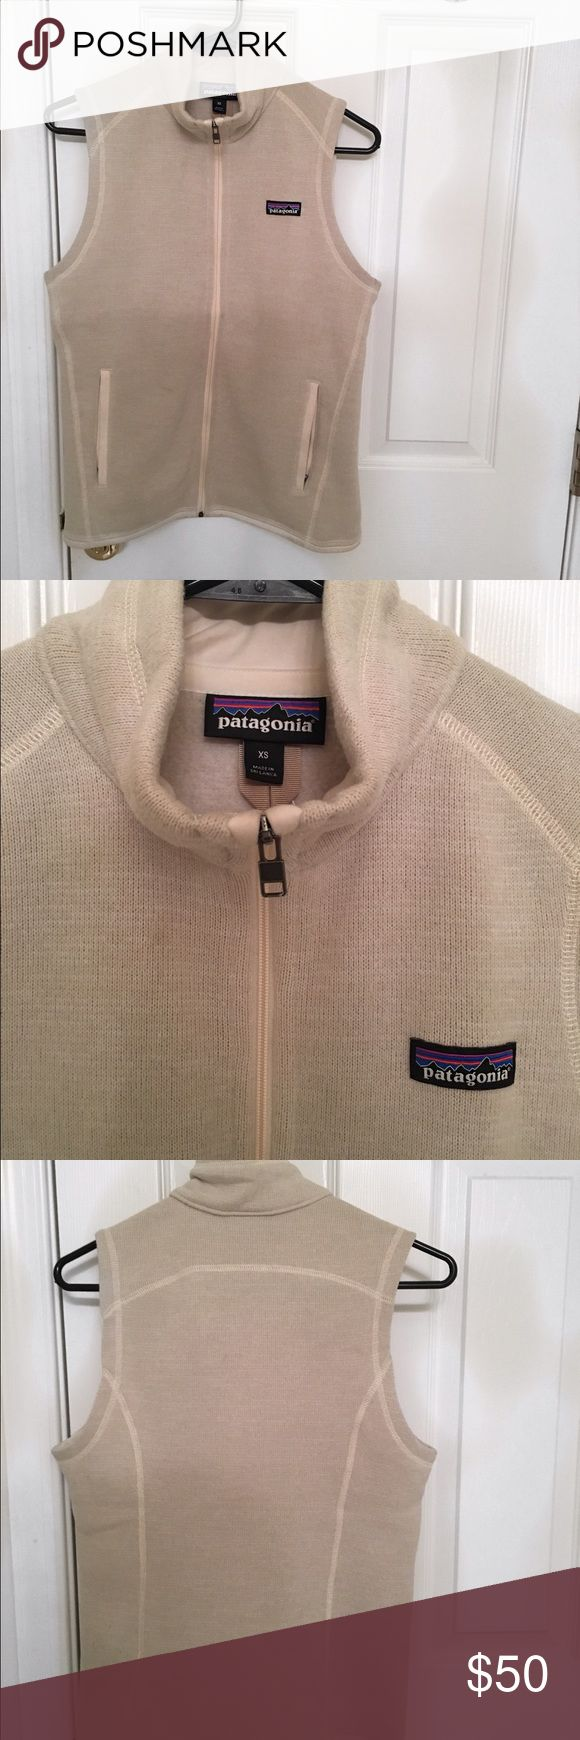 Patagonia Better Sweater Vest Patagonia Vest in color Raw Linen, lightly worn Patagonia Jackets & Coats Vests